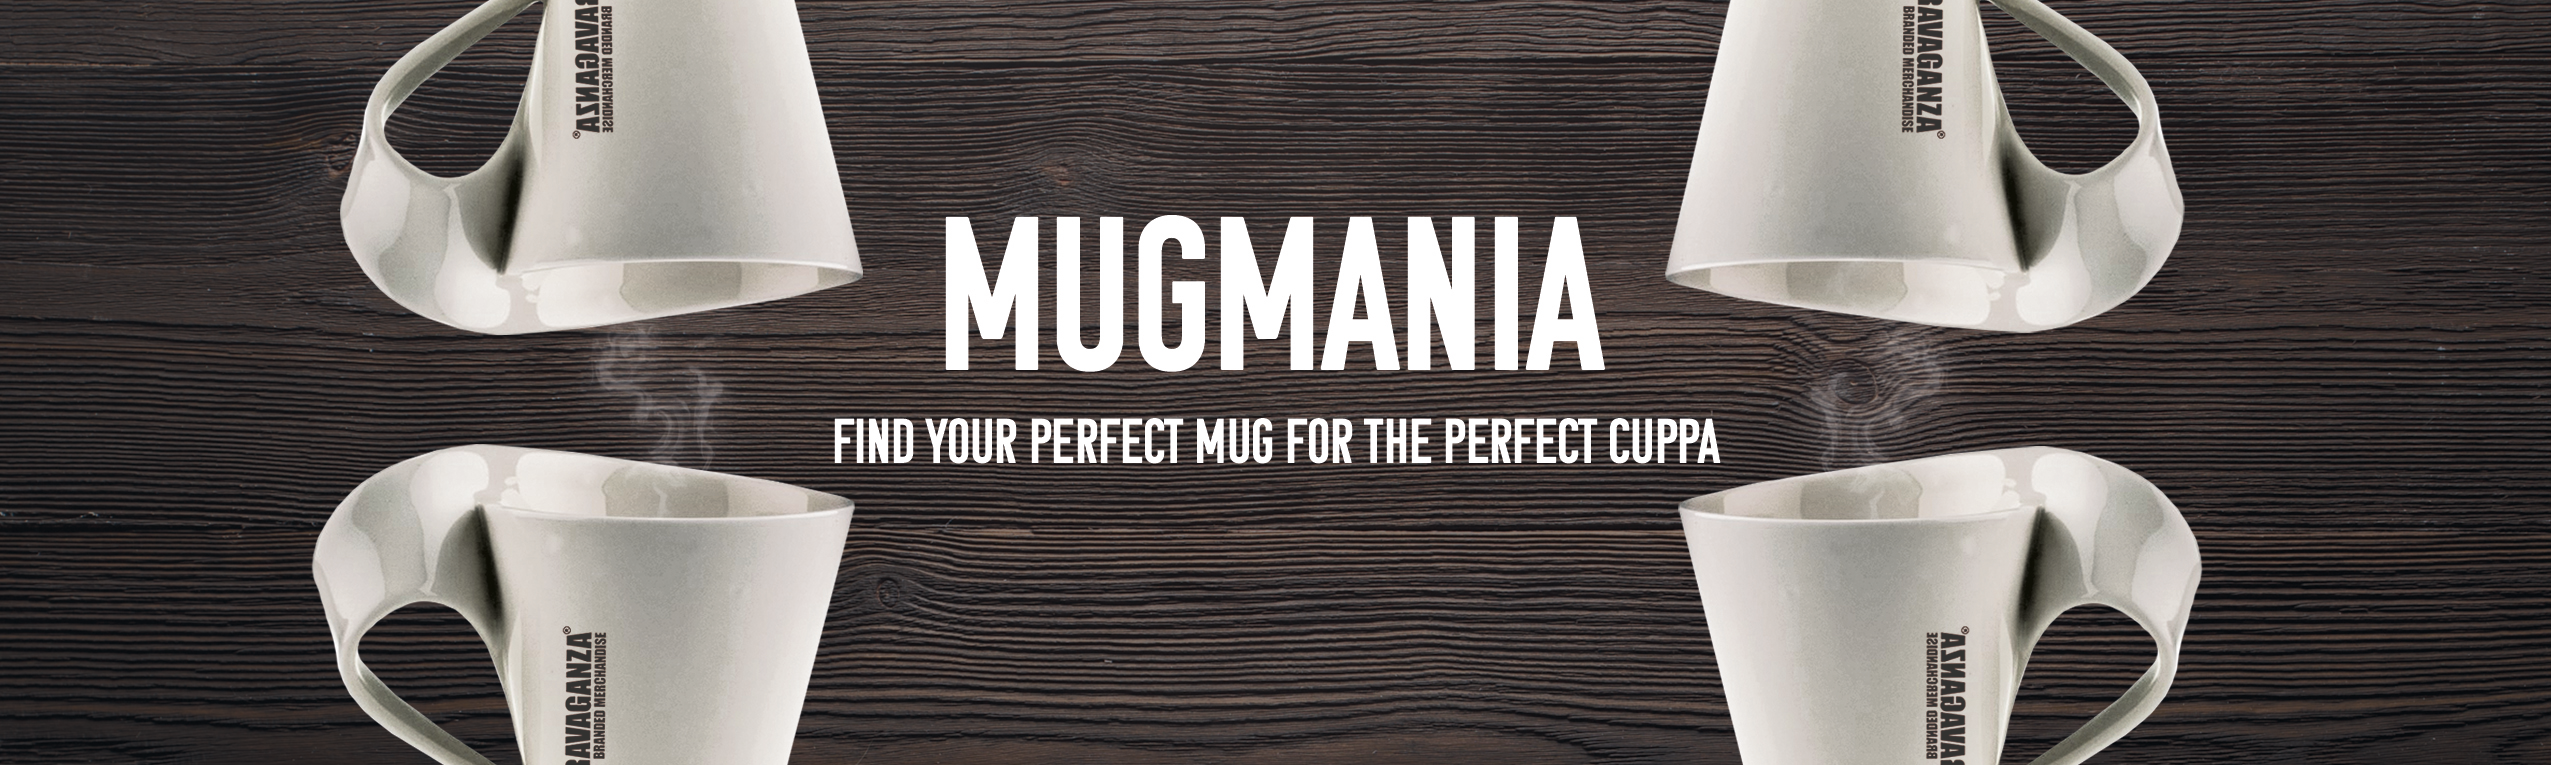 Mug Mania